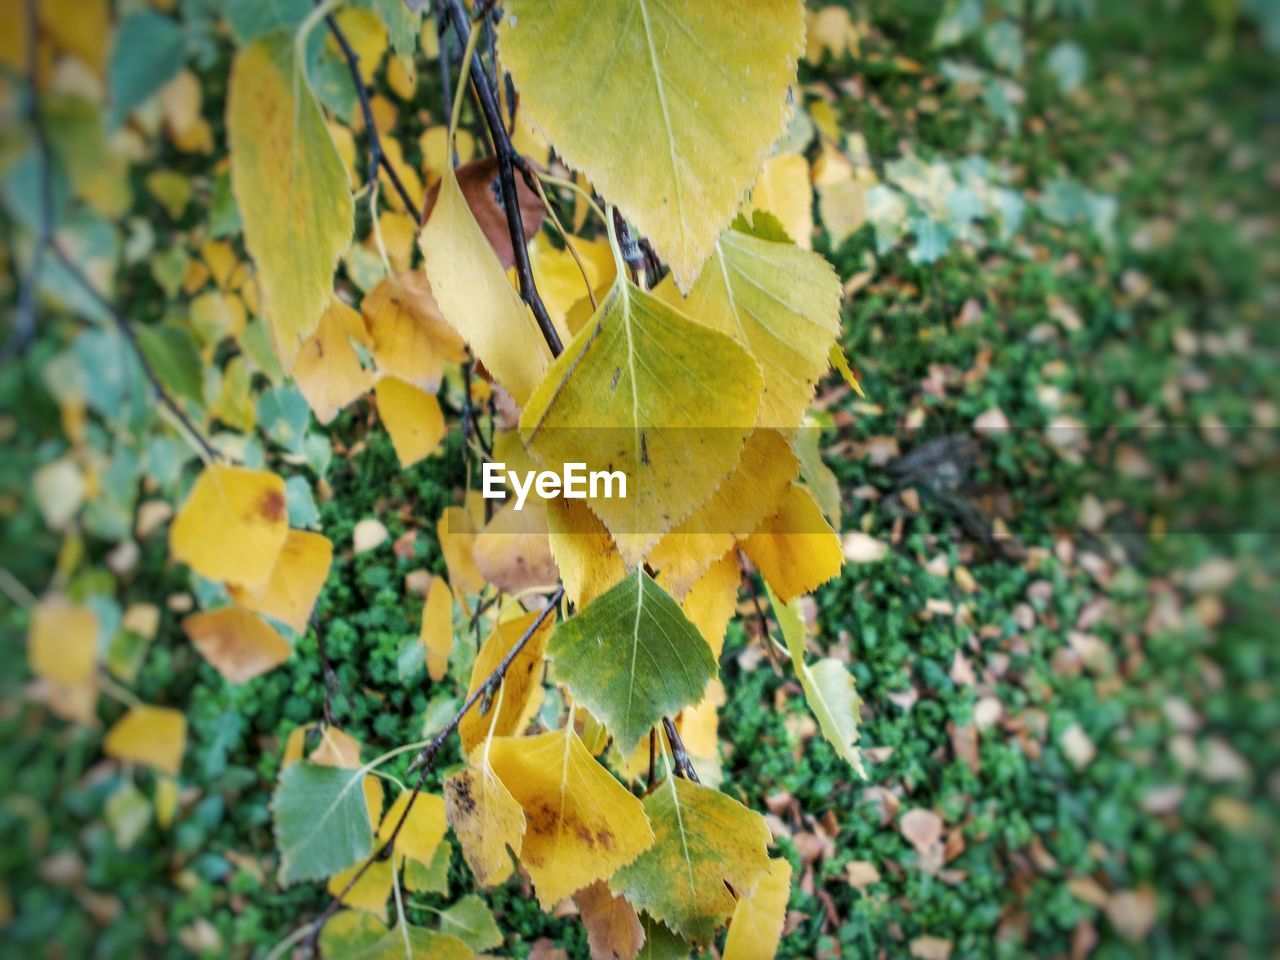 leaf, growth, autumn, nature, yellow, leaves, day, outdoors, beauty in nature, plant, no people, change, green color, close-up, focus on foreground, grape, fragility, maple, tree, freshness